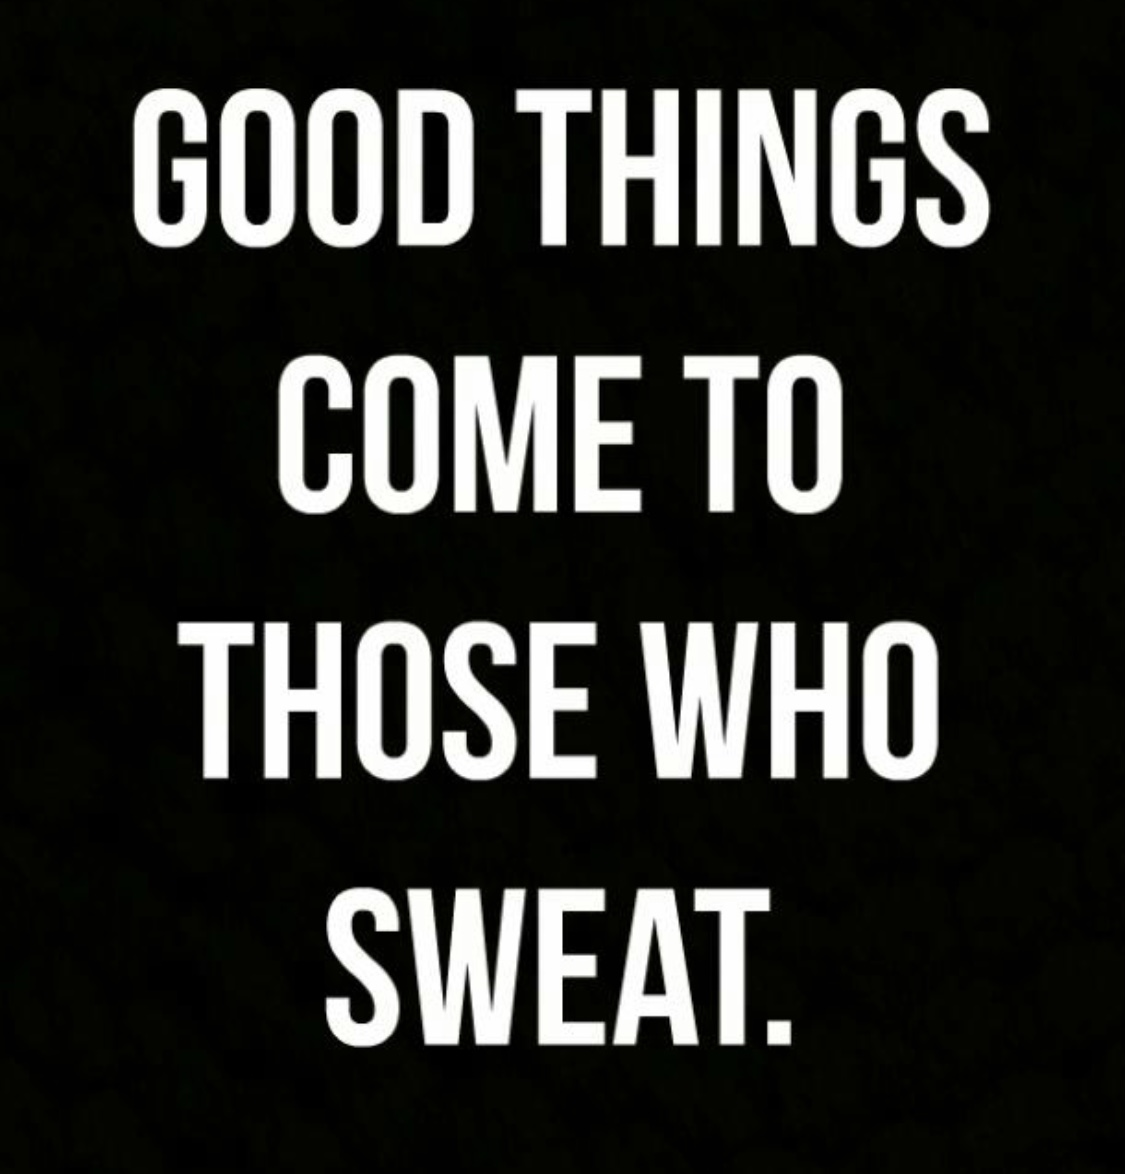 #CPTAF #gym #motivation #accountability #CPTAFSTRONG #personaltraining https://t.co/lfq6gULsVx